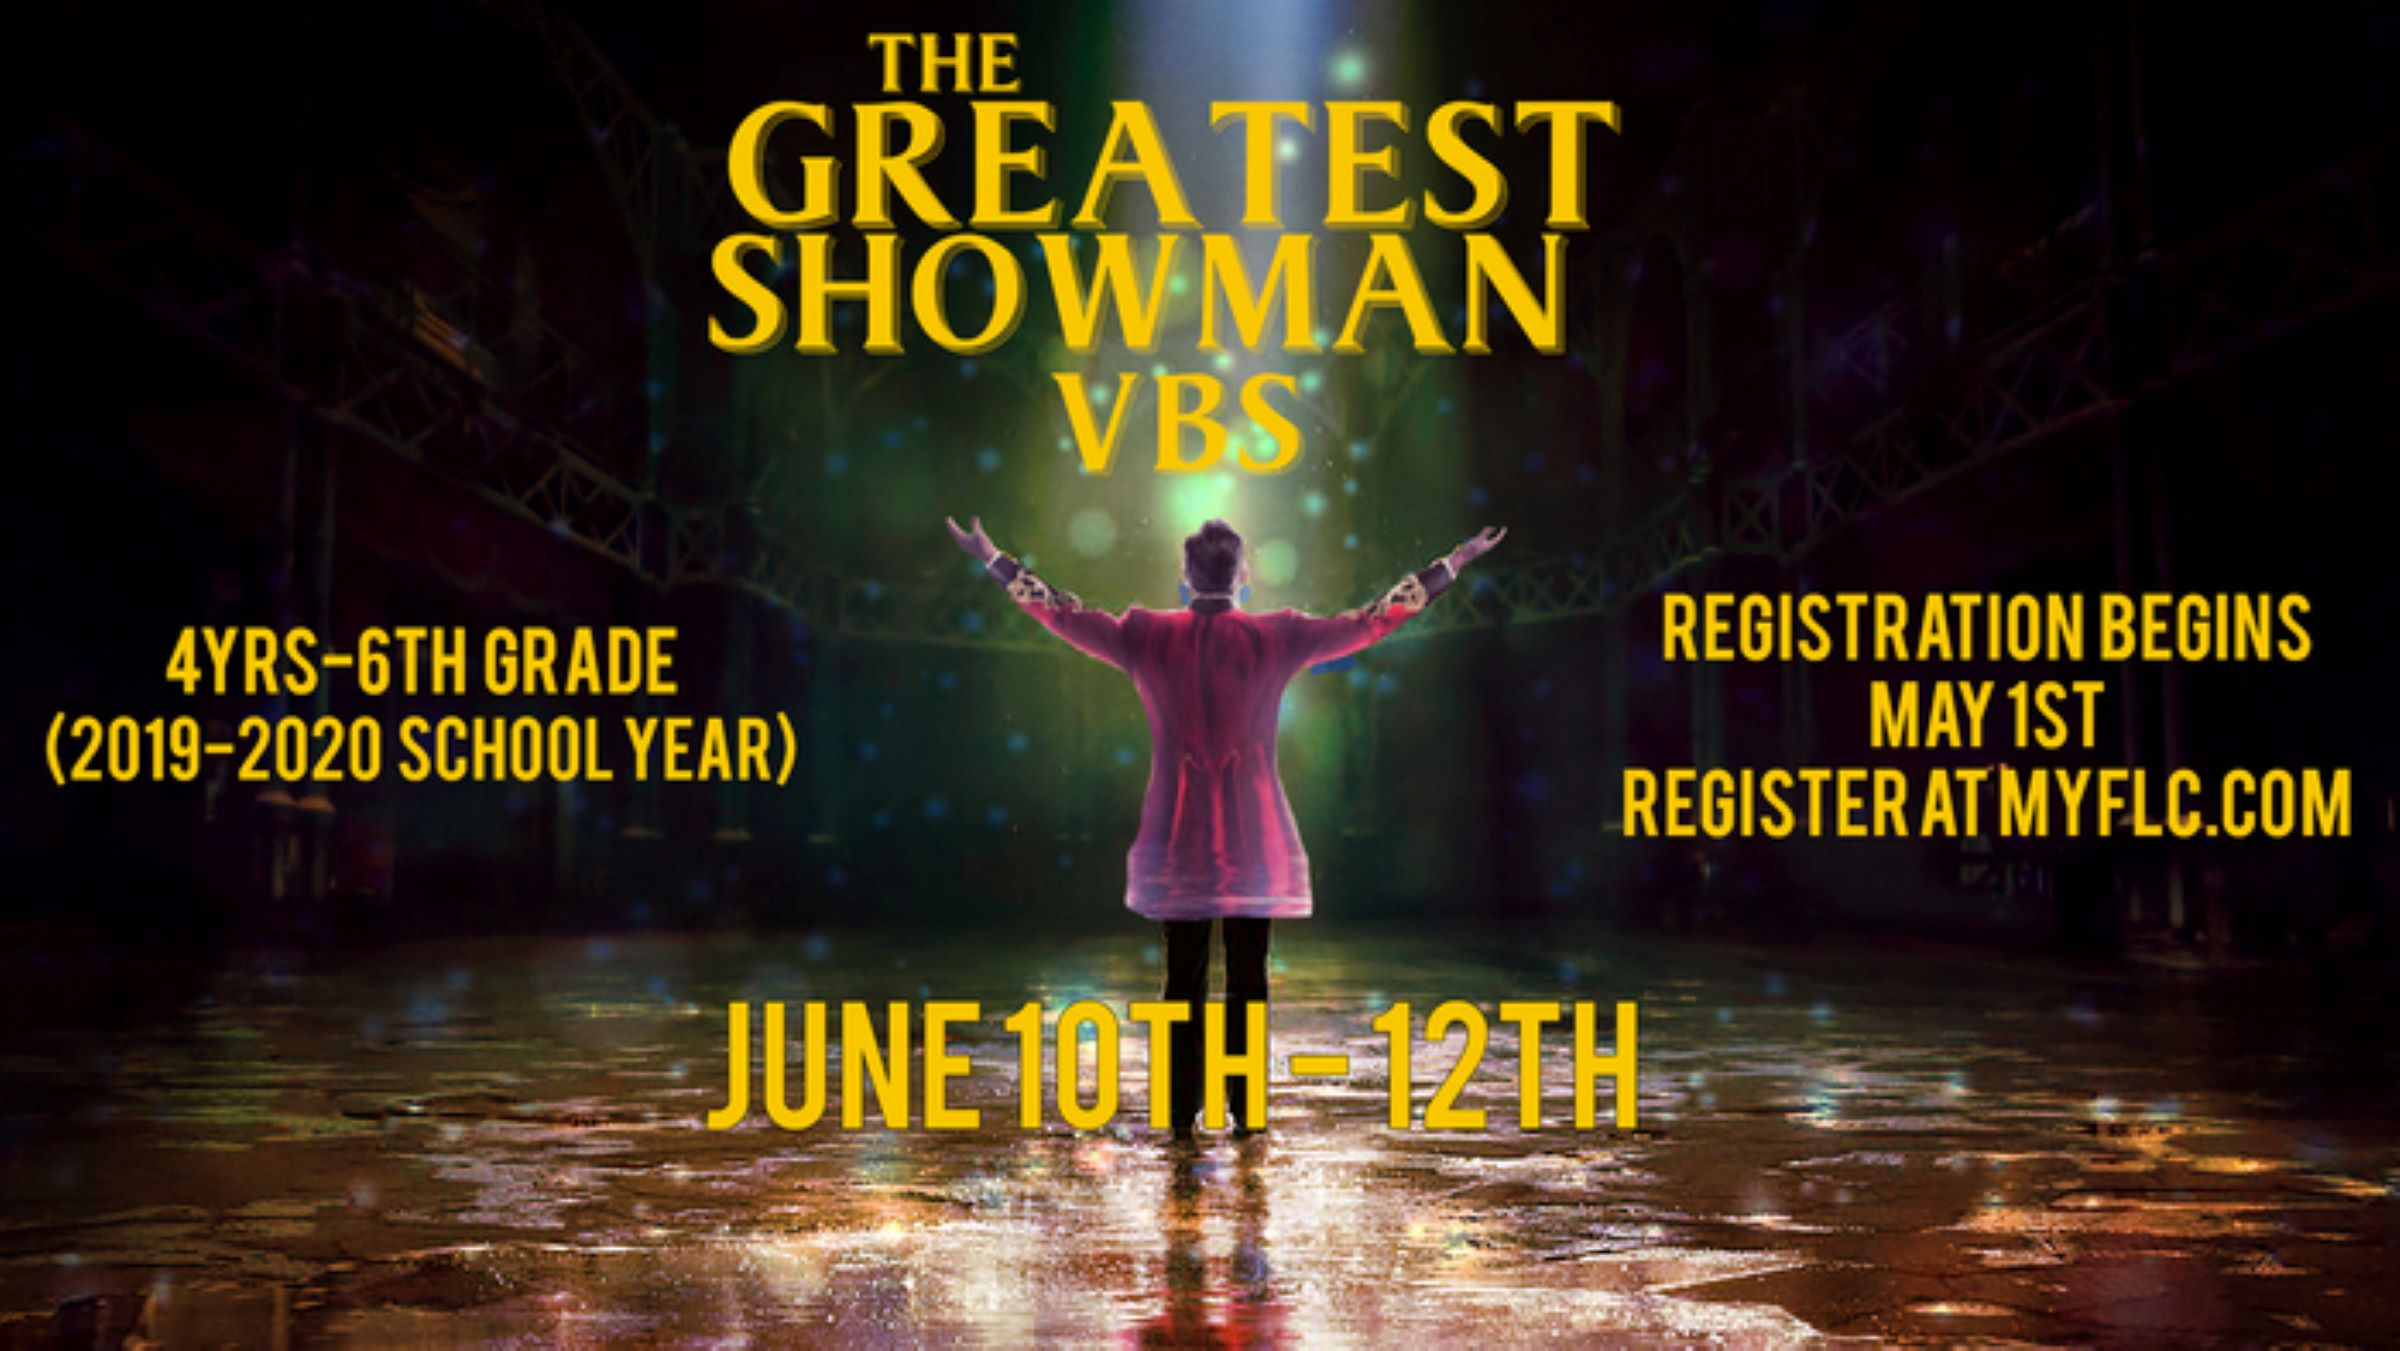 Online registration is closed. Walk-In registration will be available all 3 nights of VBS.